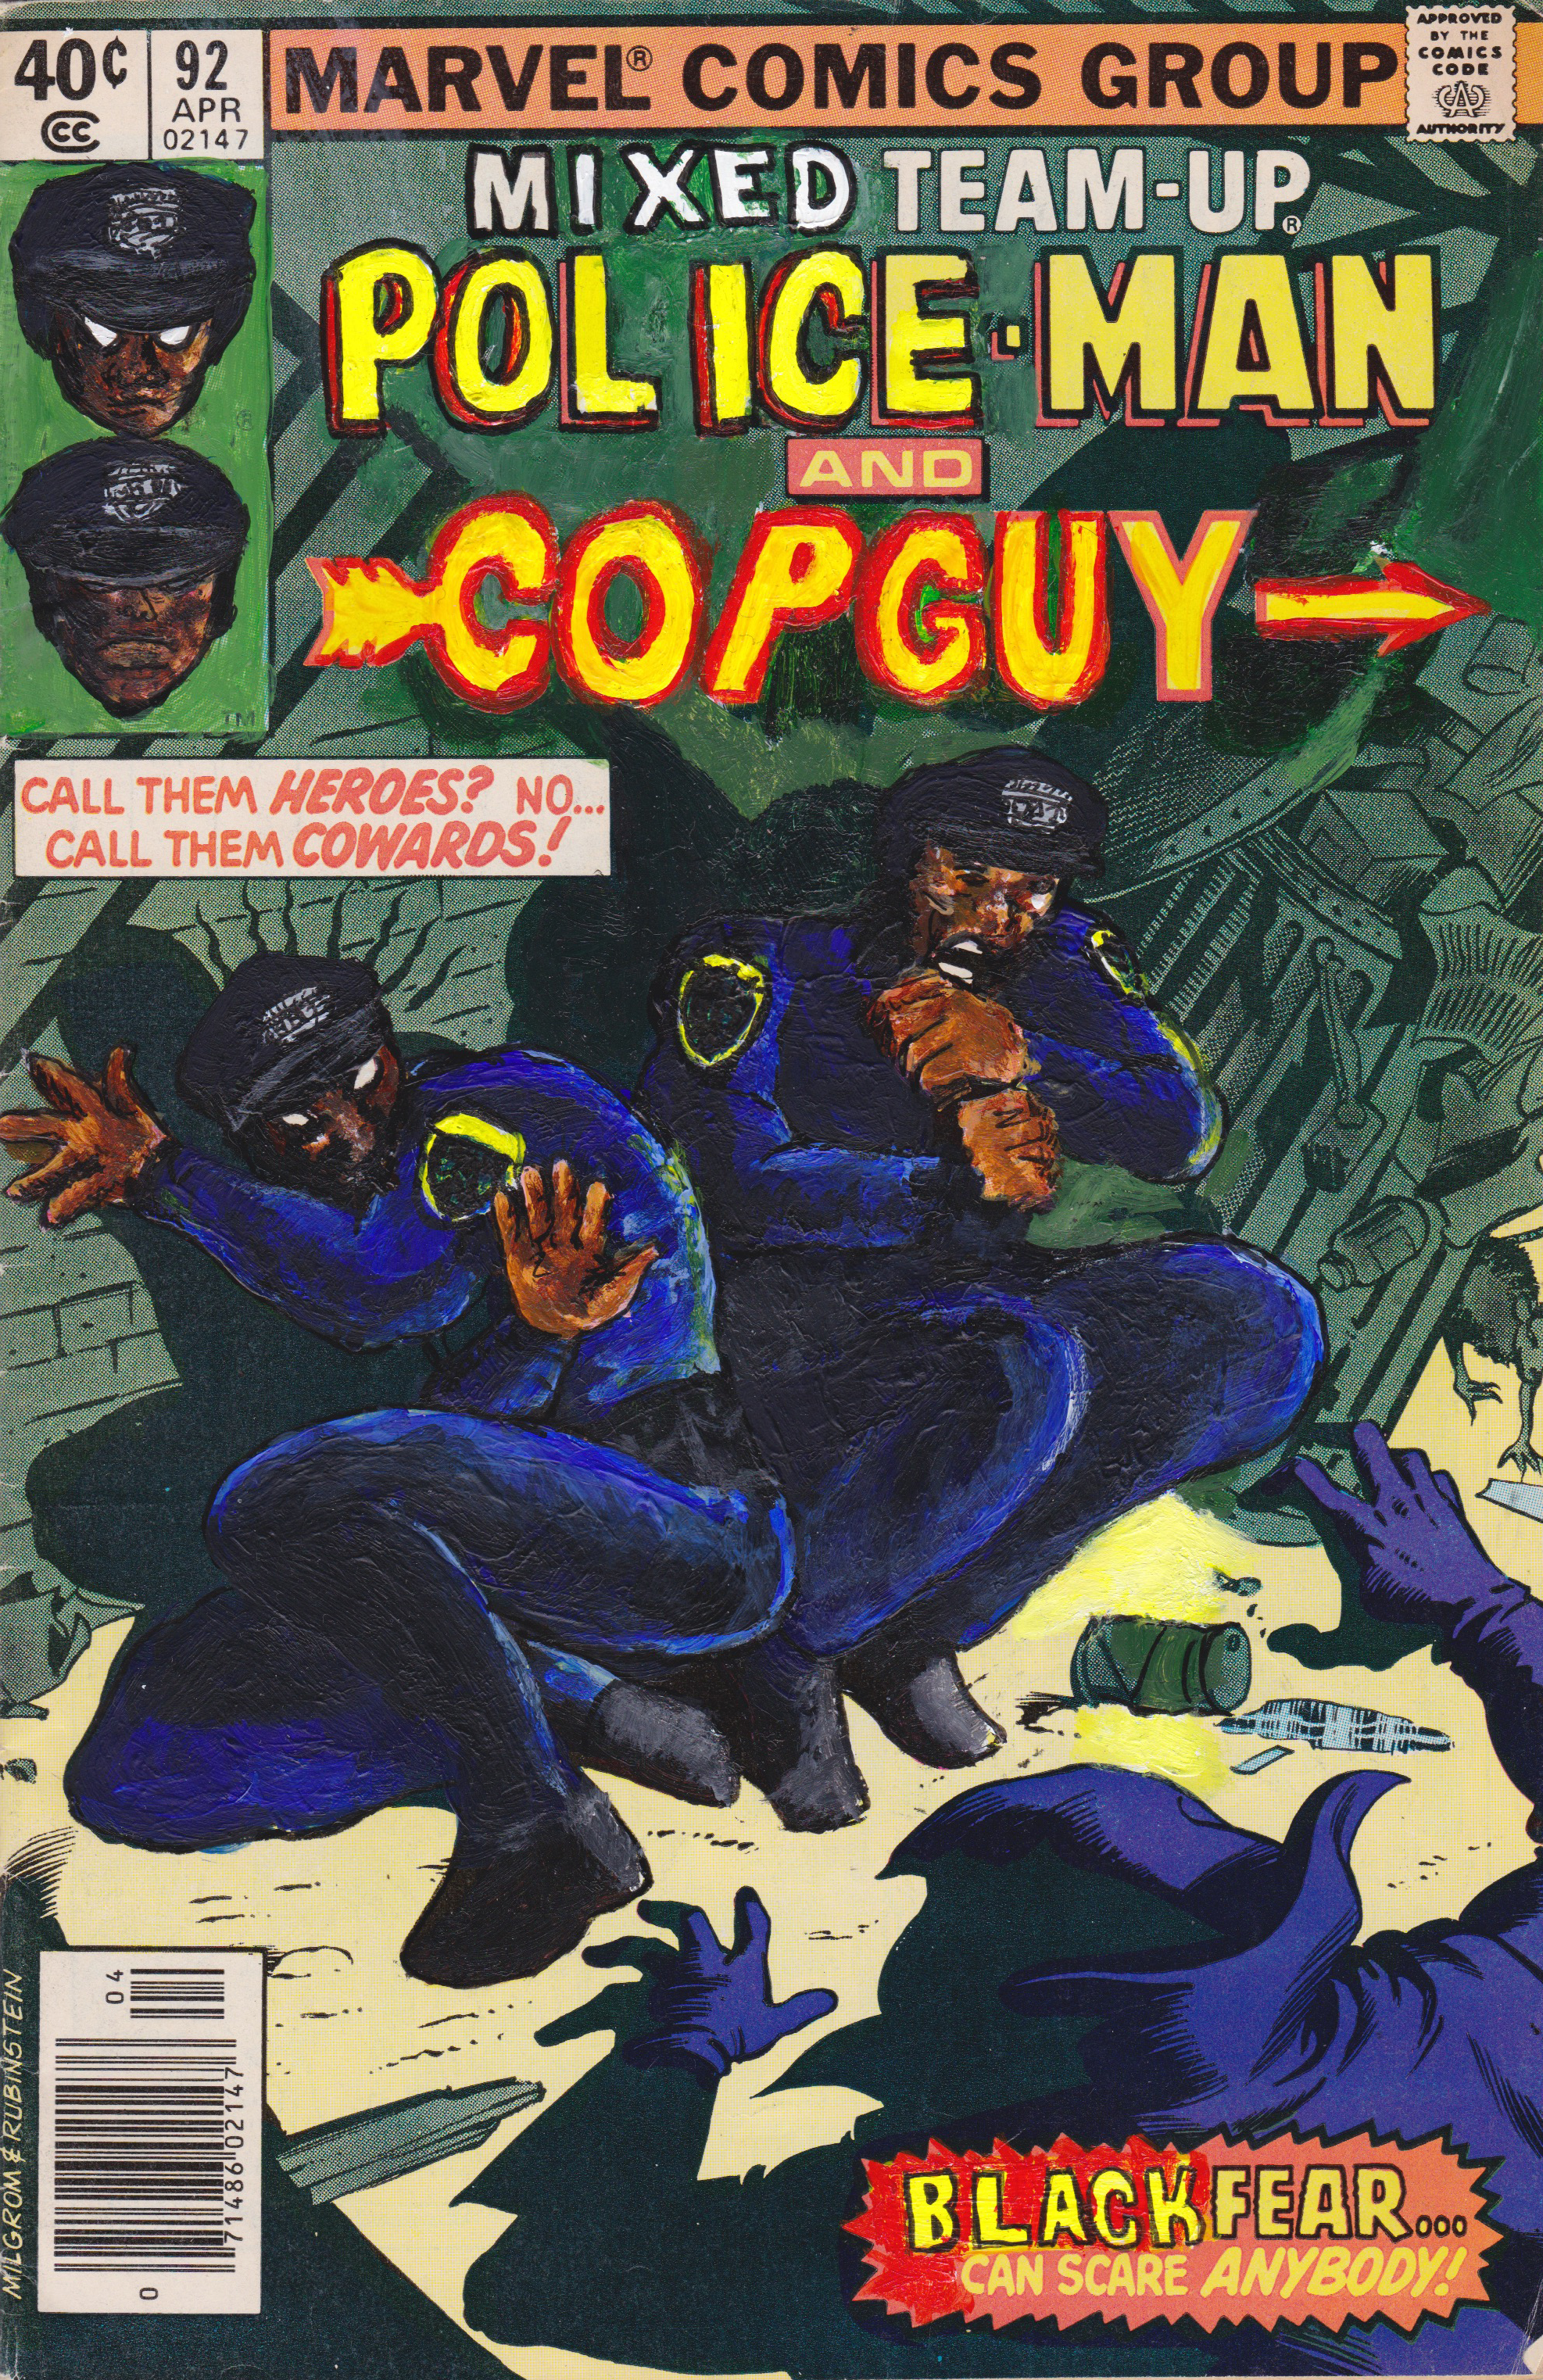 Kumasi J. Barnett  Mixed Team-up #92 Police-Man & Copguy  2016 Acrylic, marker, pen and oil marker on comic book 9 3/4h x 6 1/4w inches